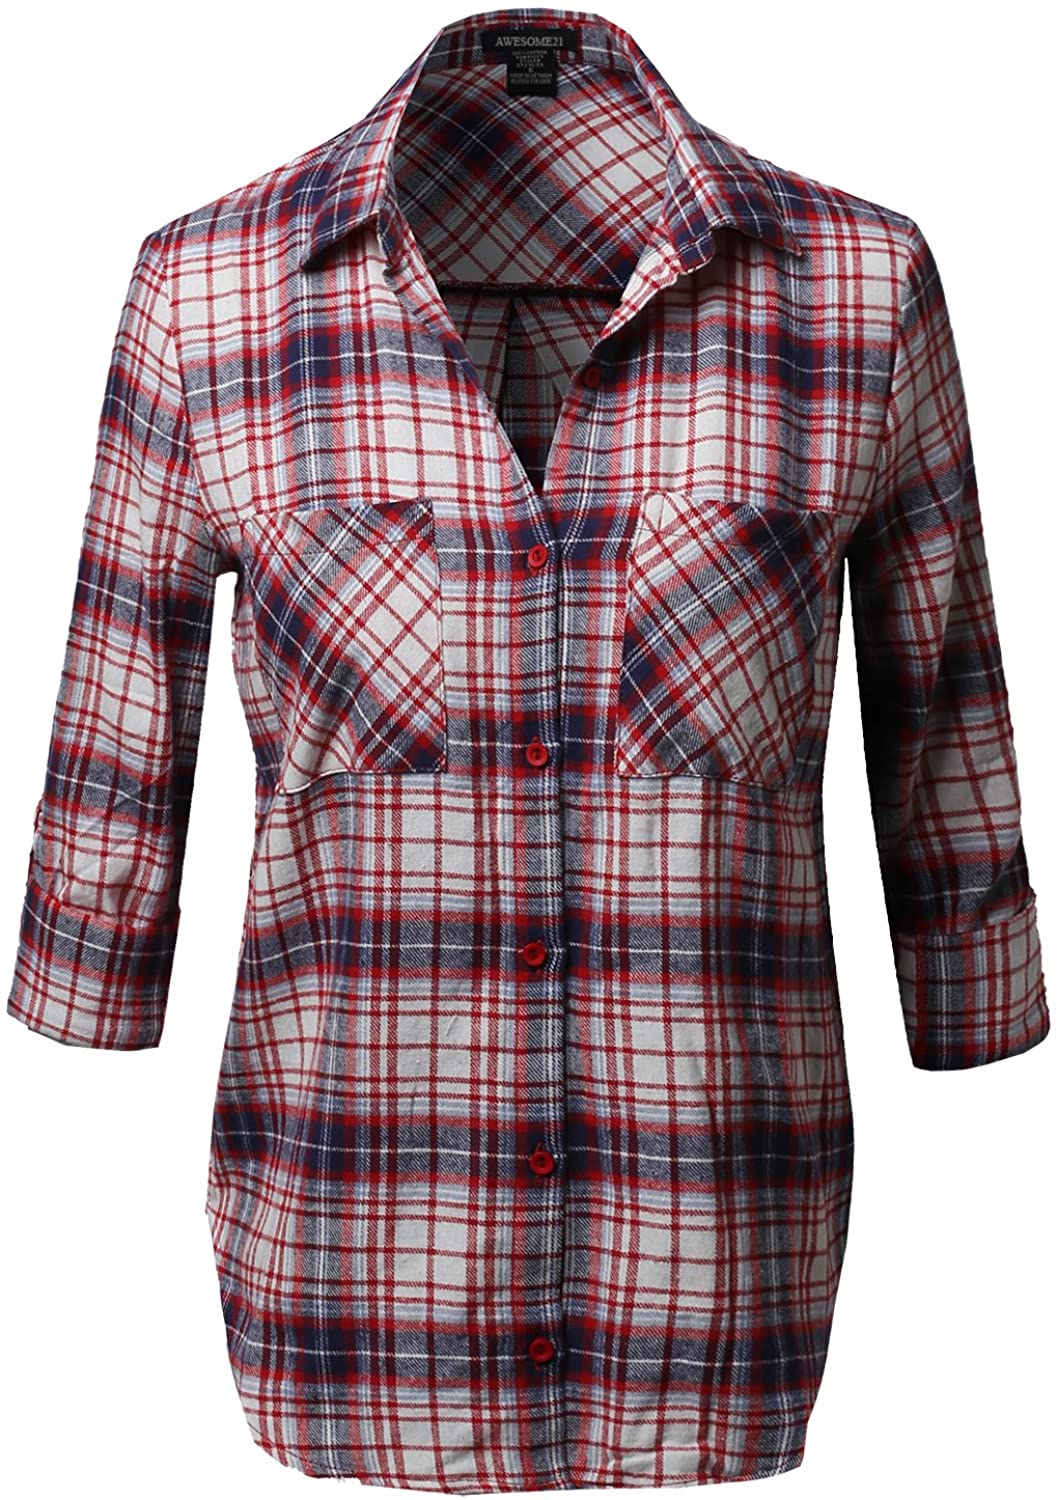 Awesome21 Womens Flannel Plaid Checker Roll Up Sleeves Button Down Shirt